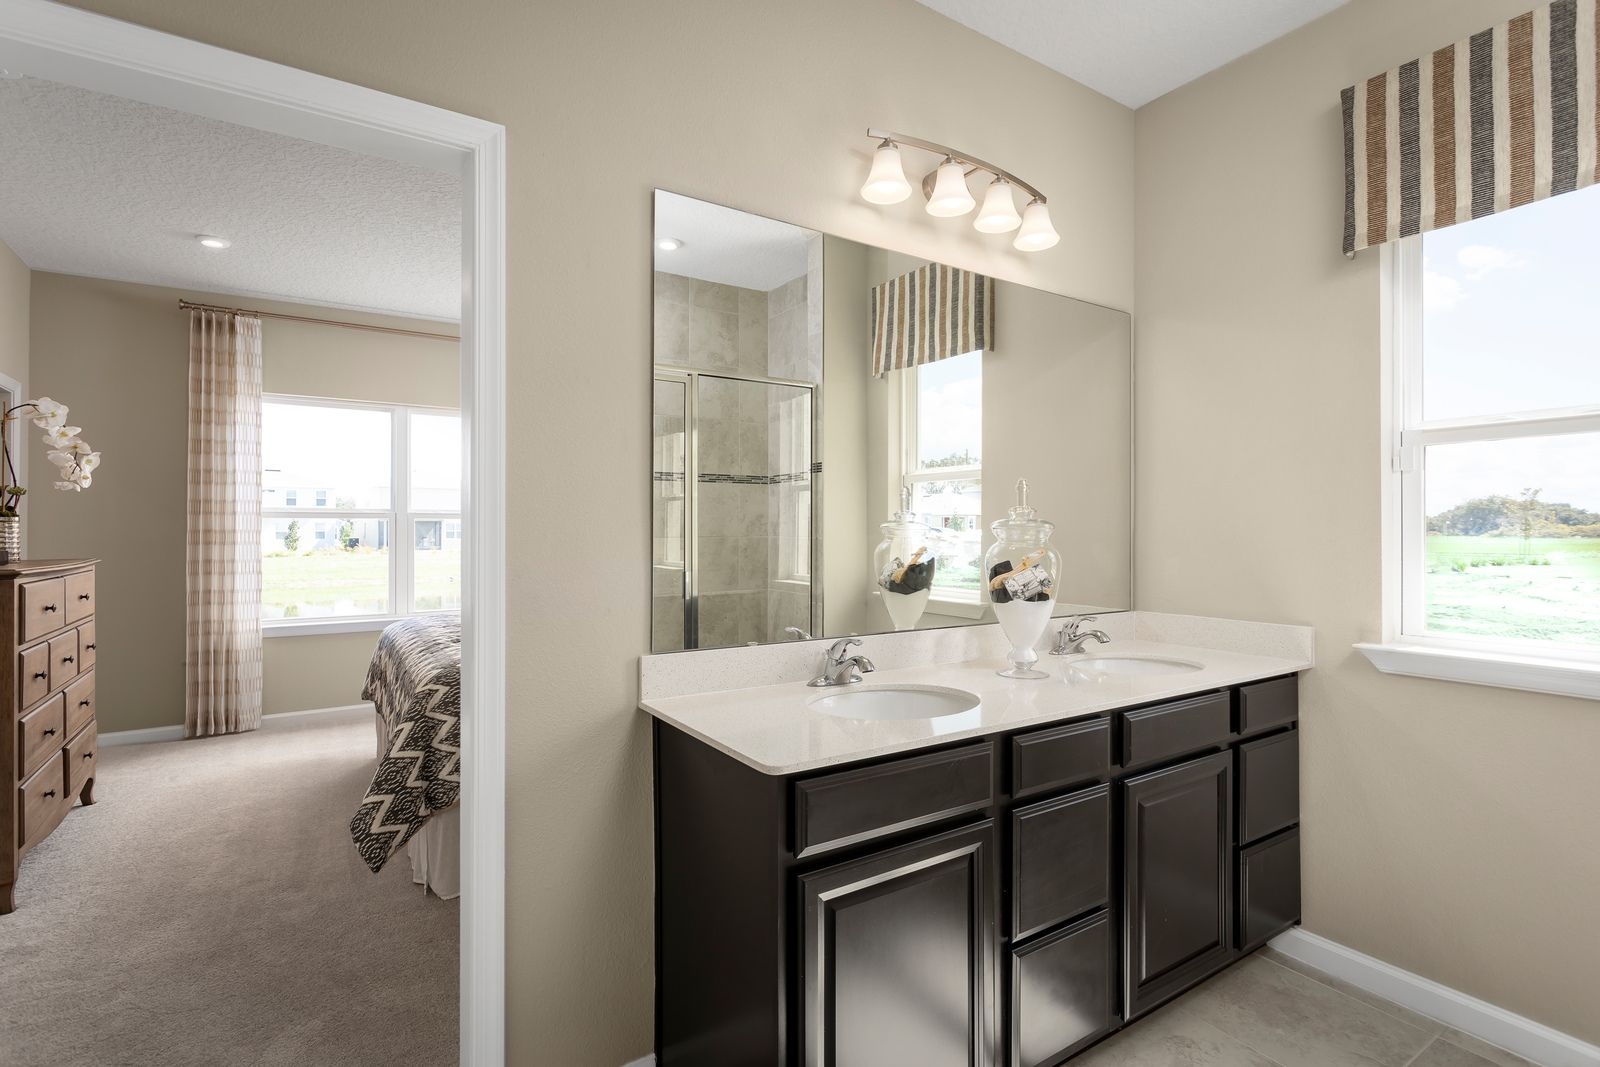 Bathroom featured in the Century By Ryan Homes in Orlando, FL